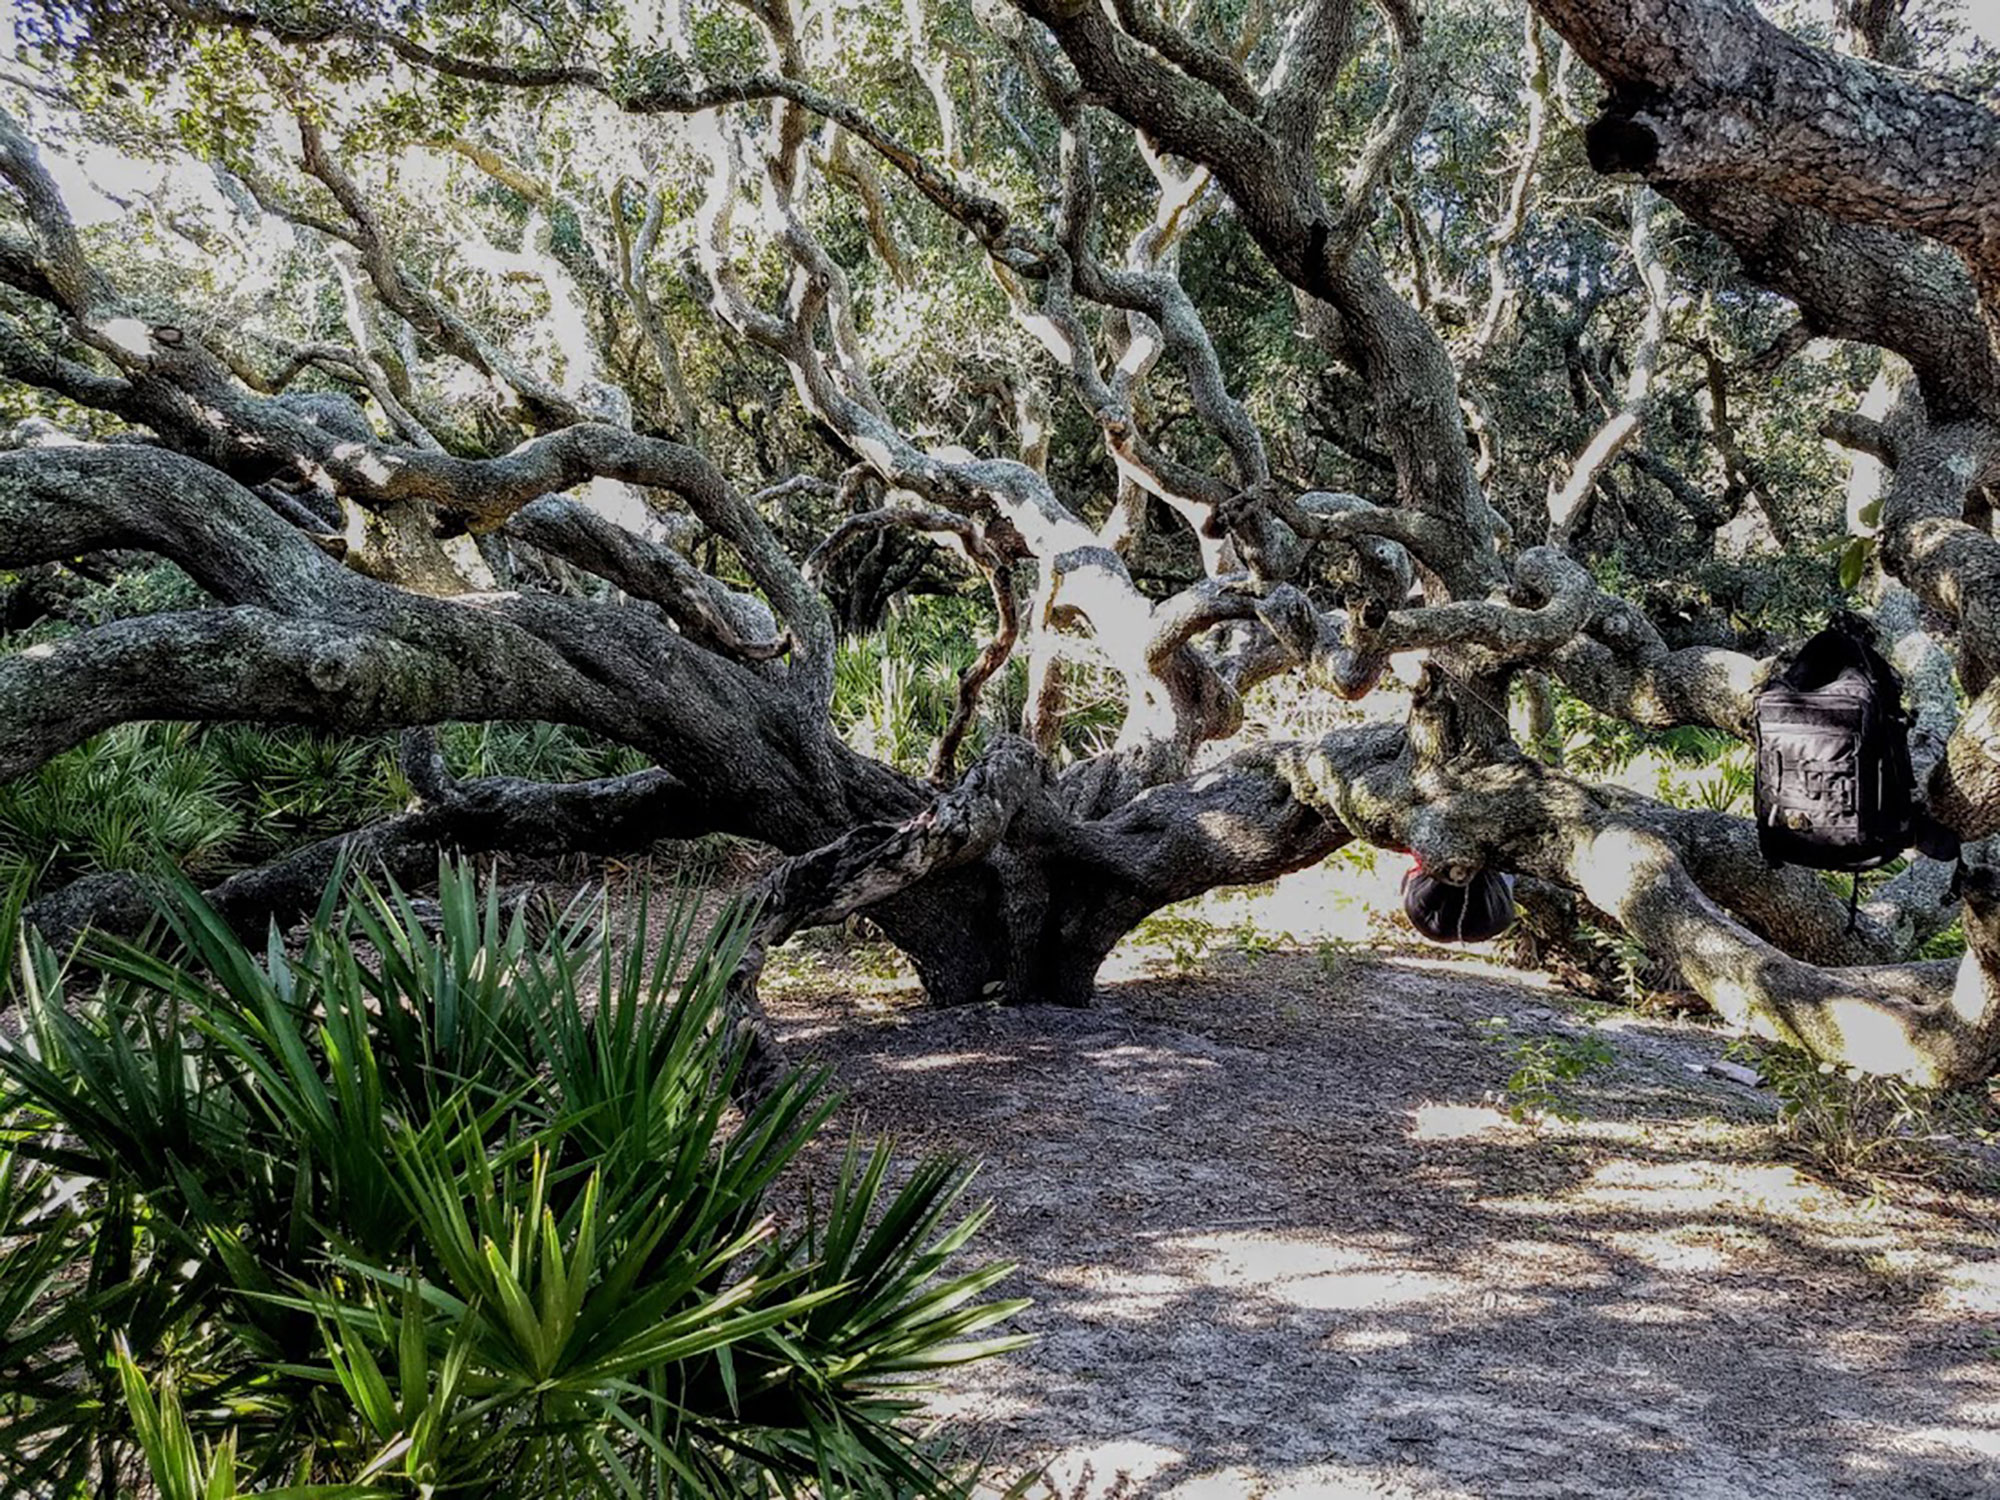 Cumberland Island's 50 miles of trails meander through pristine maritime forests under live oak canopies. Courtesy: Troy Allen Lair